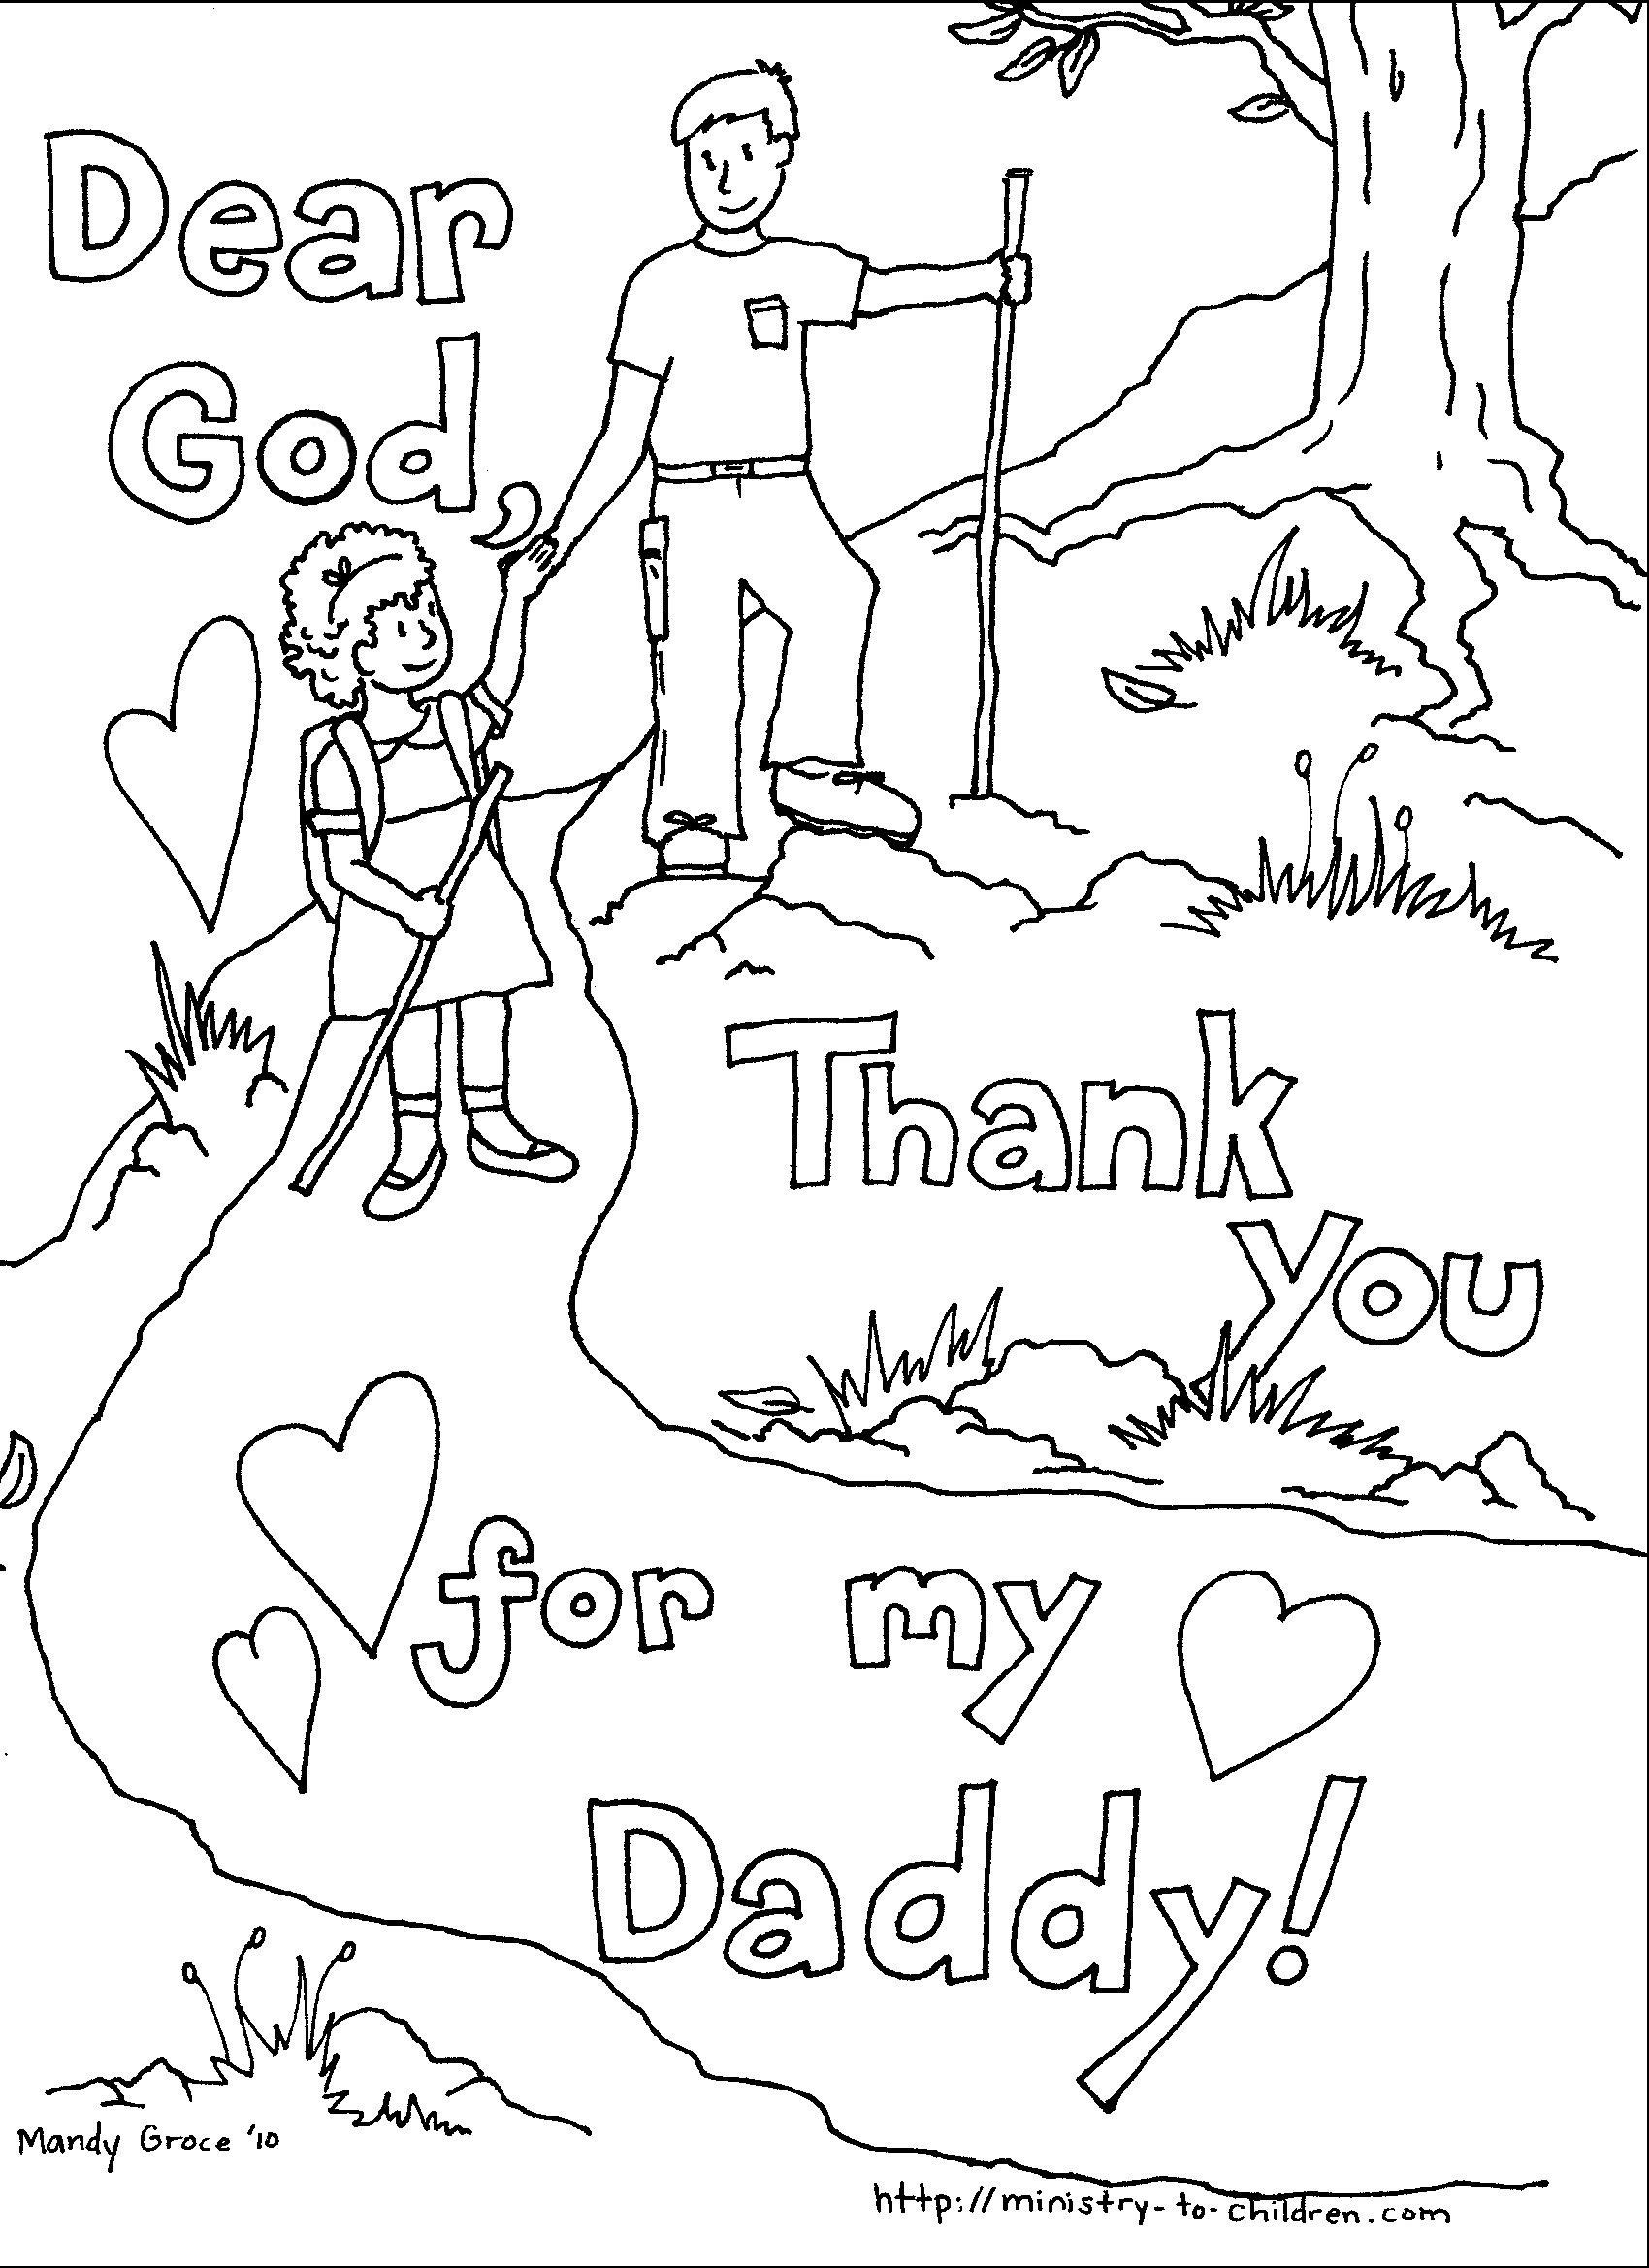 Best ideas about Fathers Day Coloring Pages For Kids . Save or Pin fathers day coloring pages to print Free Now.